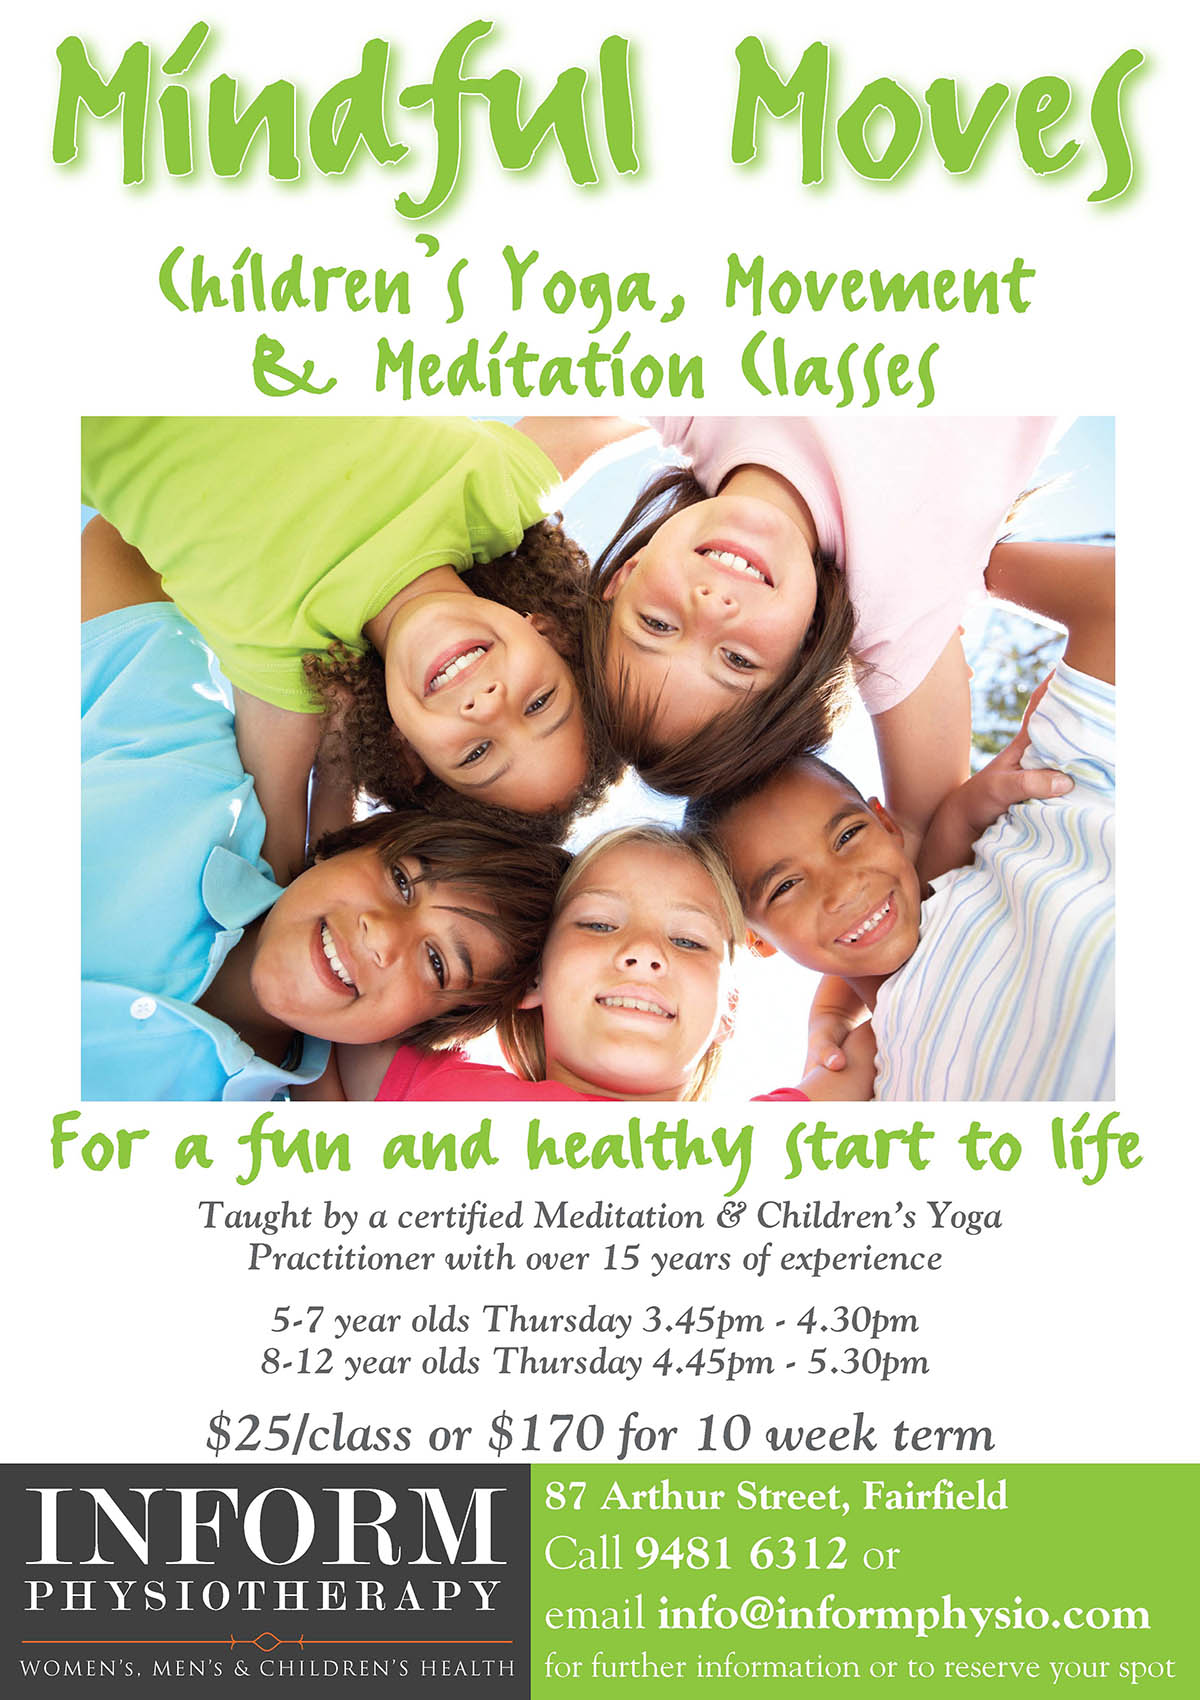 Mindful Moves – Children's Yoga, Movement & Meditation Classes Term 4! - image Mindful-Moves-Childrens-Yoga-A5-size on https://www.informphysio.com